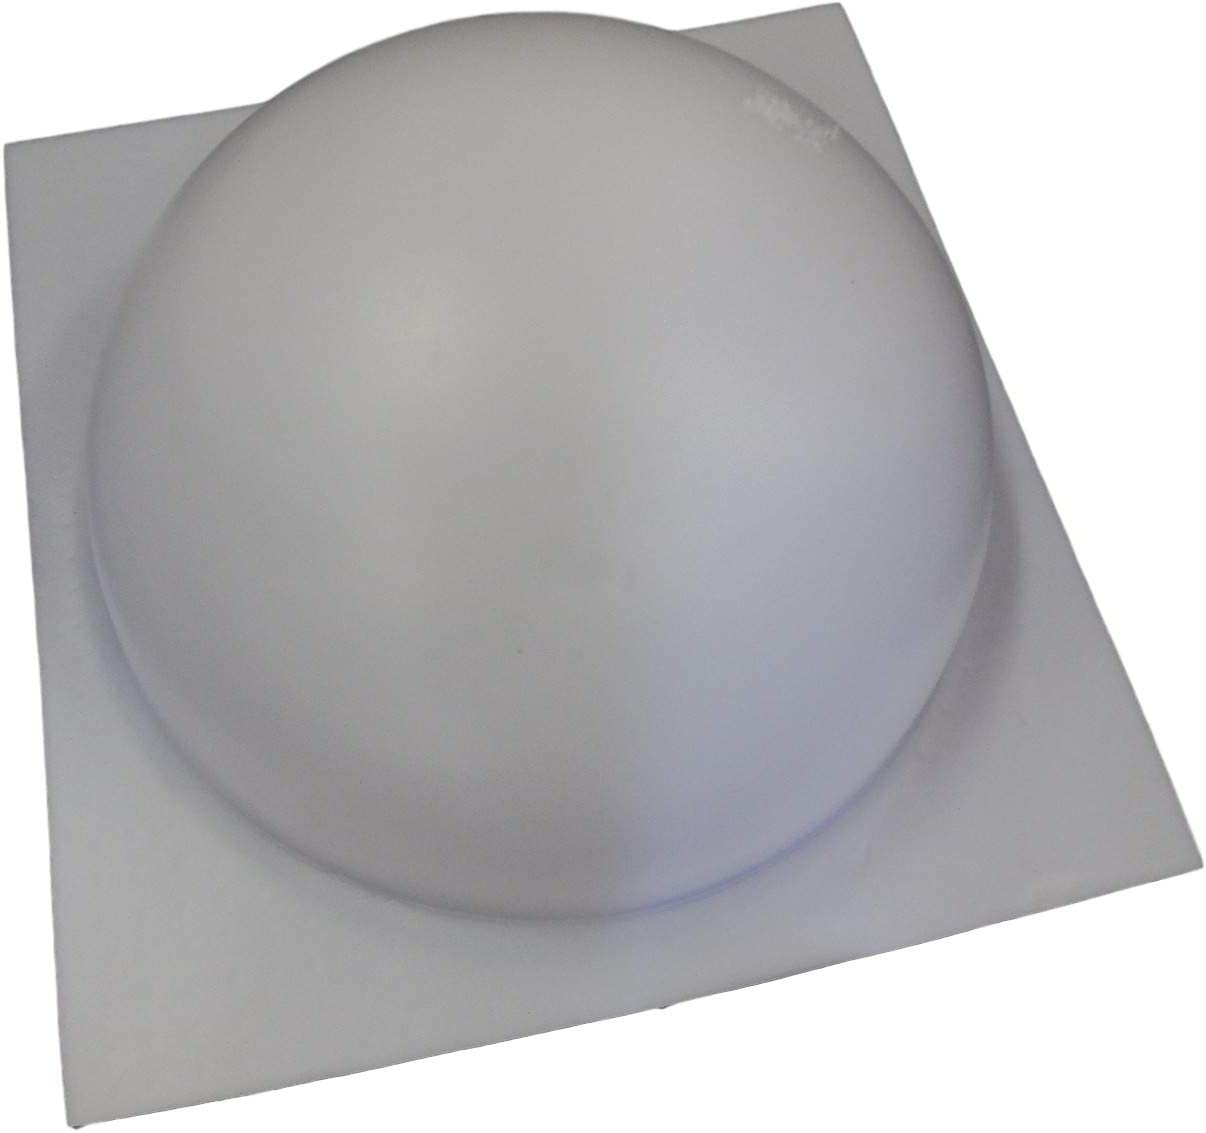 "Half sphere 4/"" W mold plaster concrete resin casting mould"